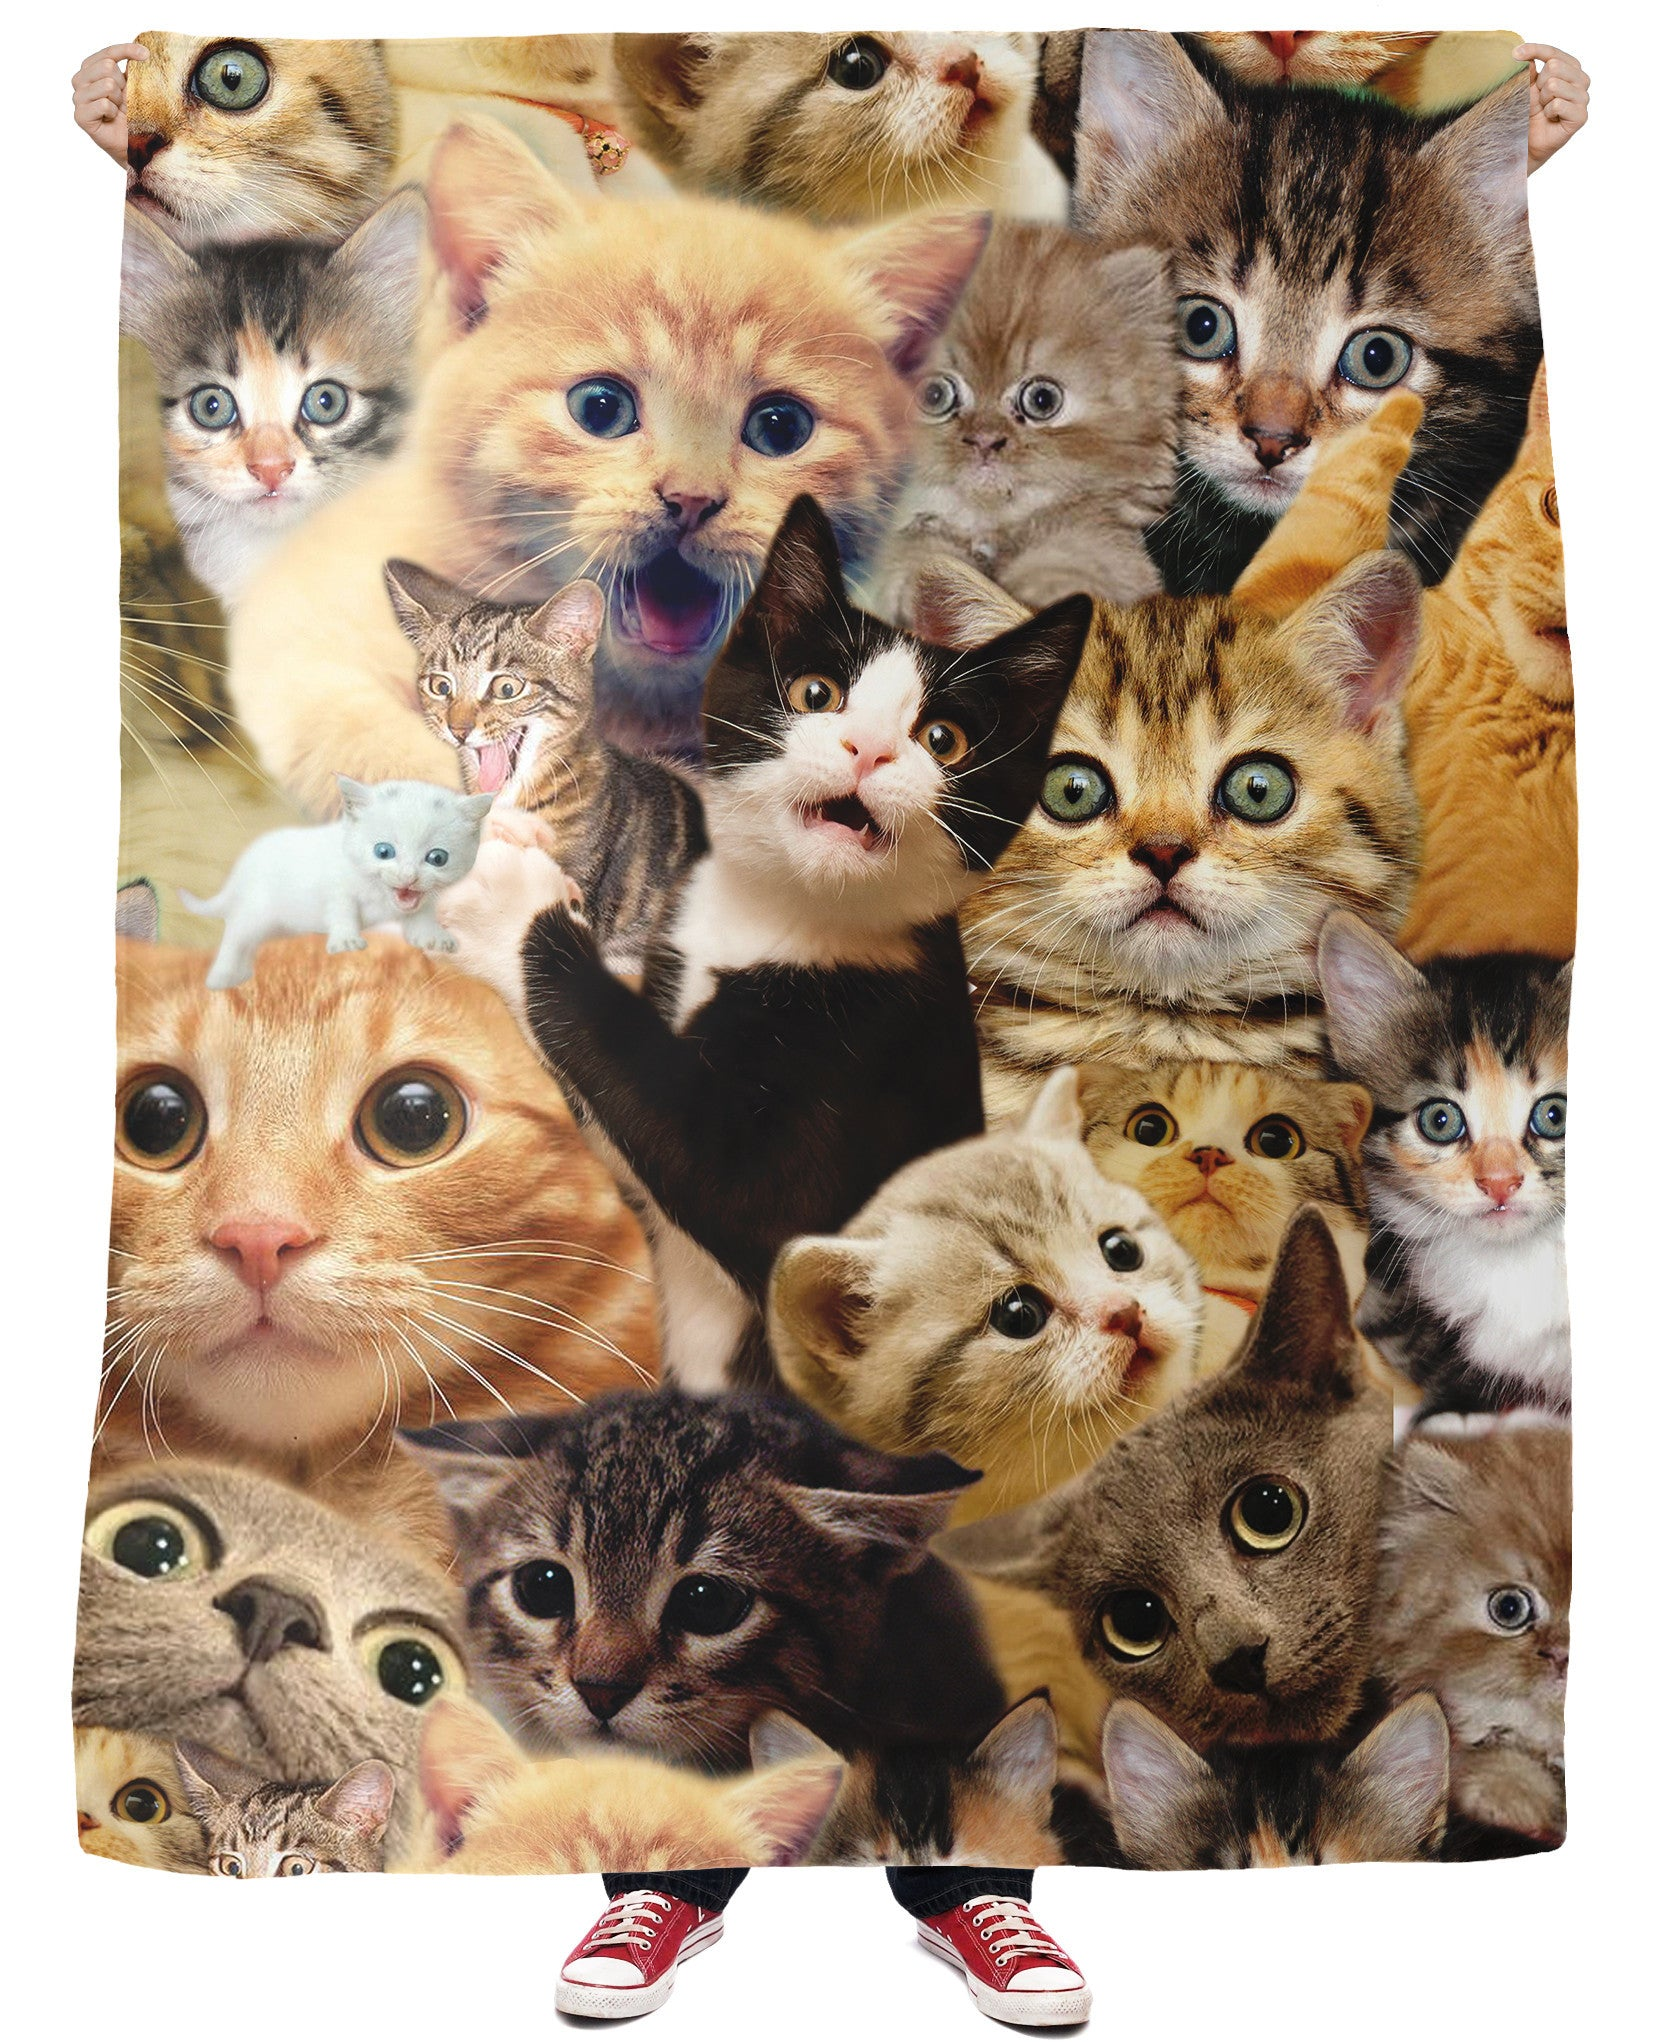 Surprised Cats Fleece Blanket